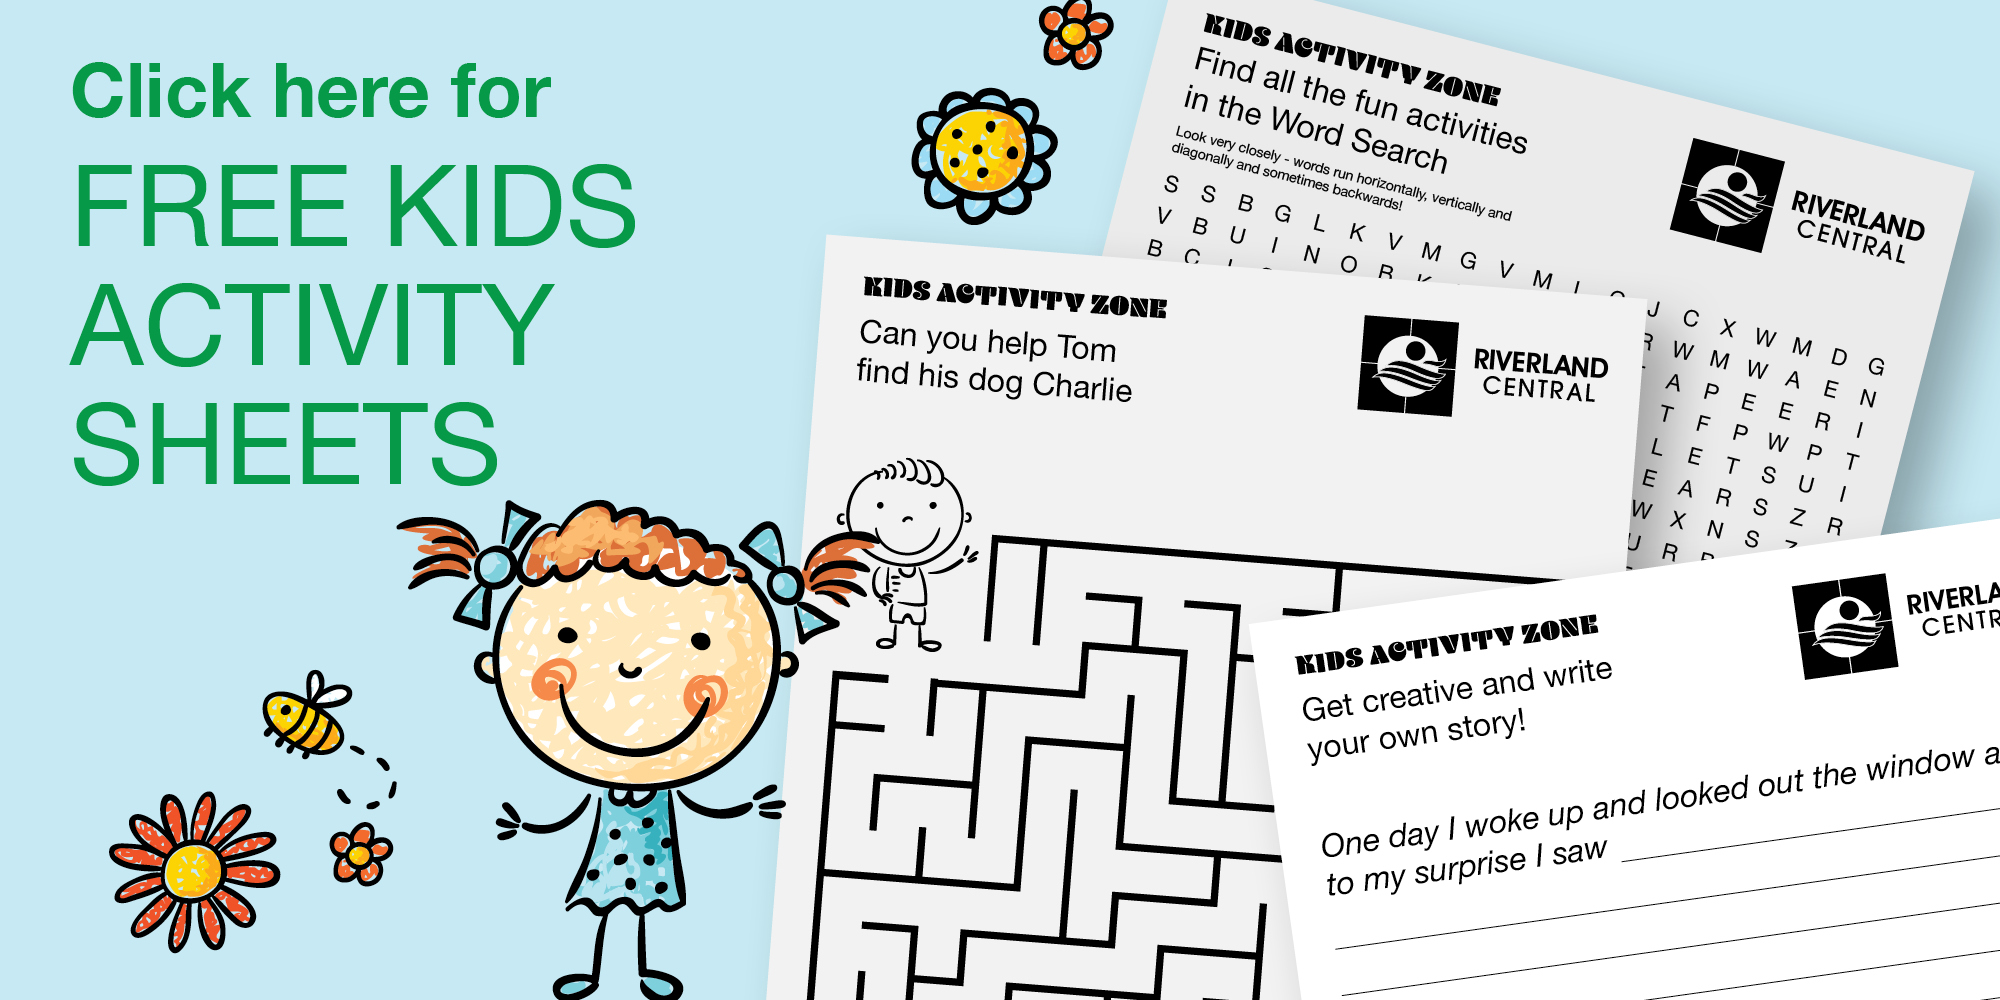 20 046 RC School Holiday Web Tiles ACTIVITY